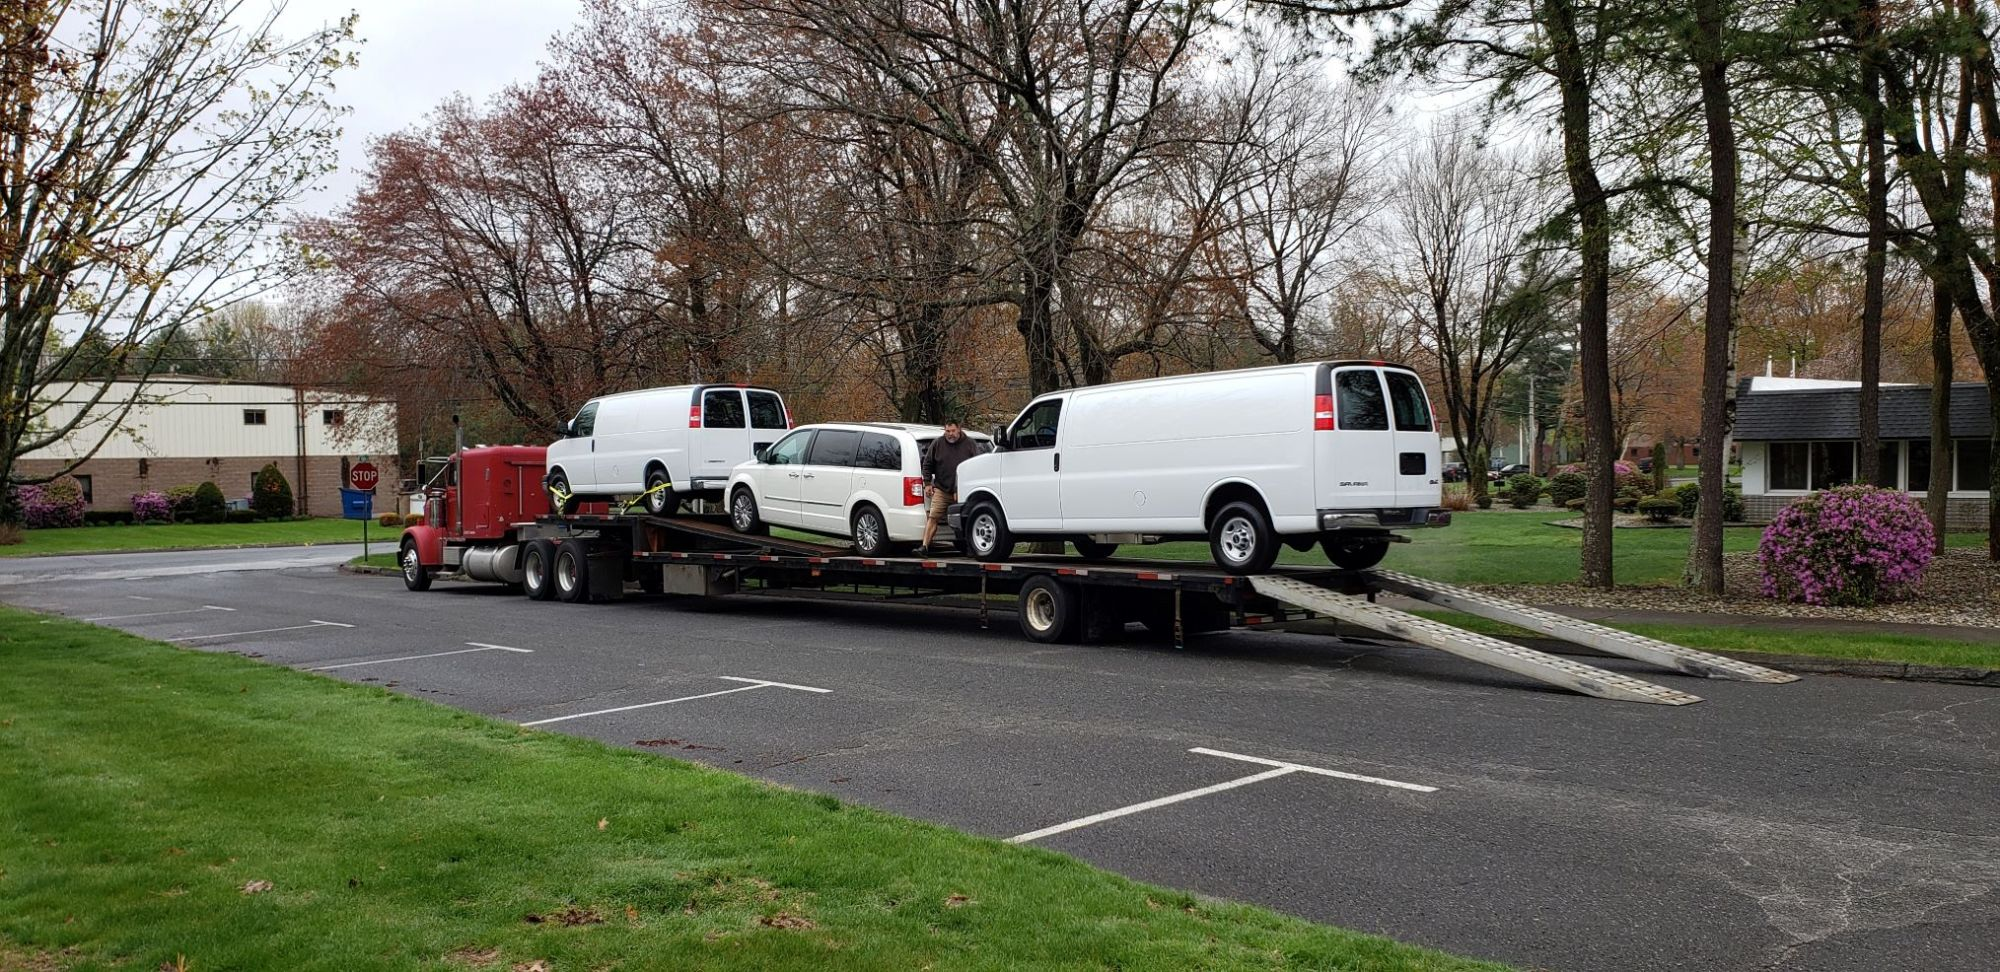 Central Virginia Carpet Cleaning Purchases New Butler Carpet Cleaning Equipment and Van!